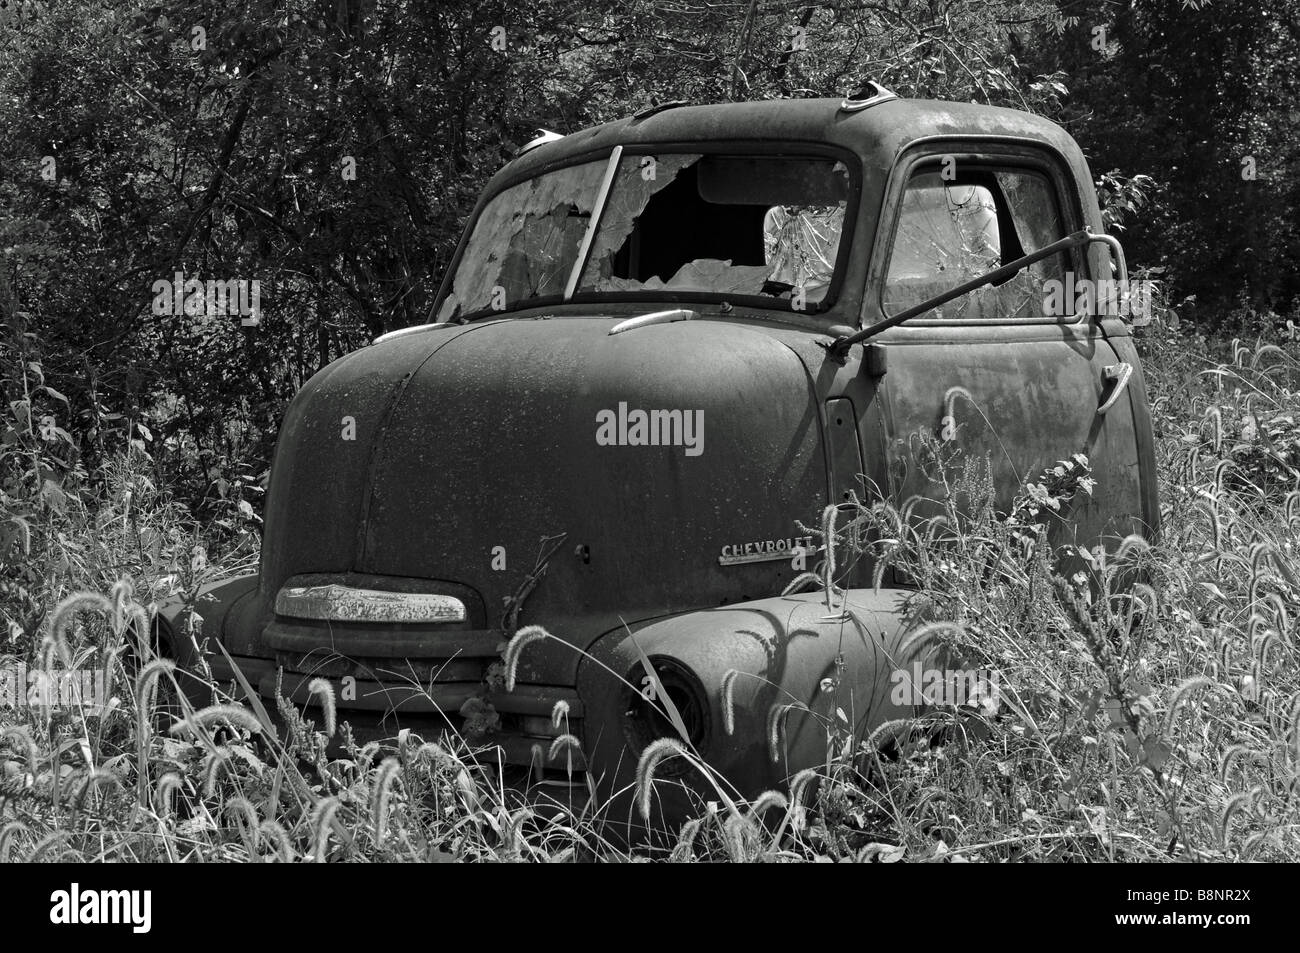 Old Chevrolet truck, Stub nose - Stock Image